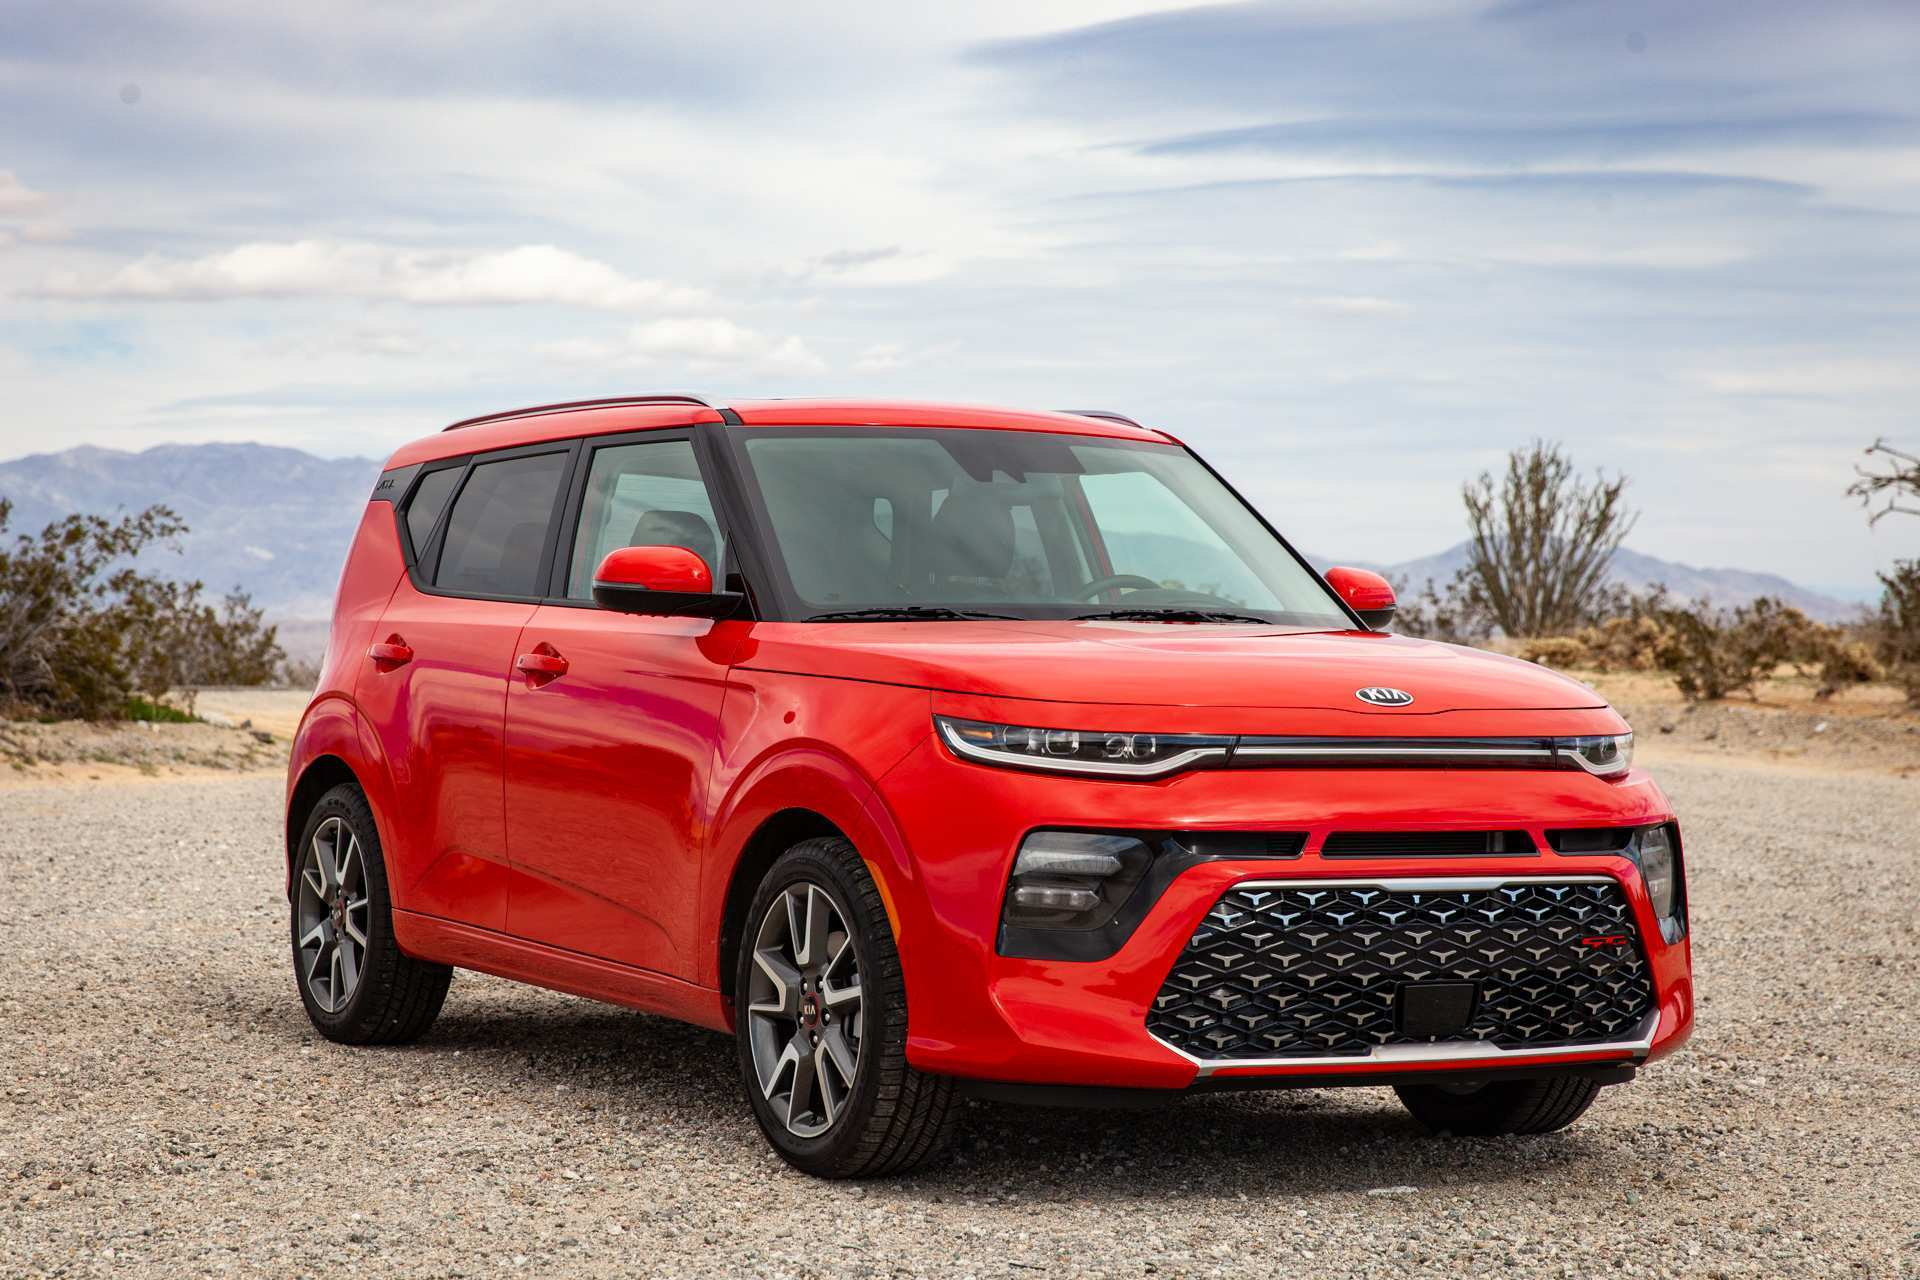 34 New 2020 Kia Soul Vs Honda Hrv Redesign And Review